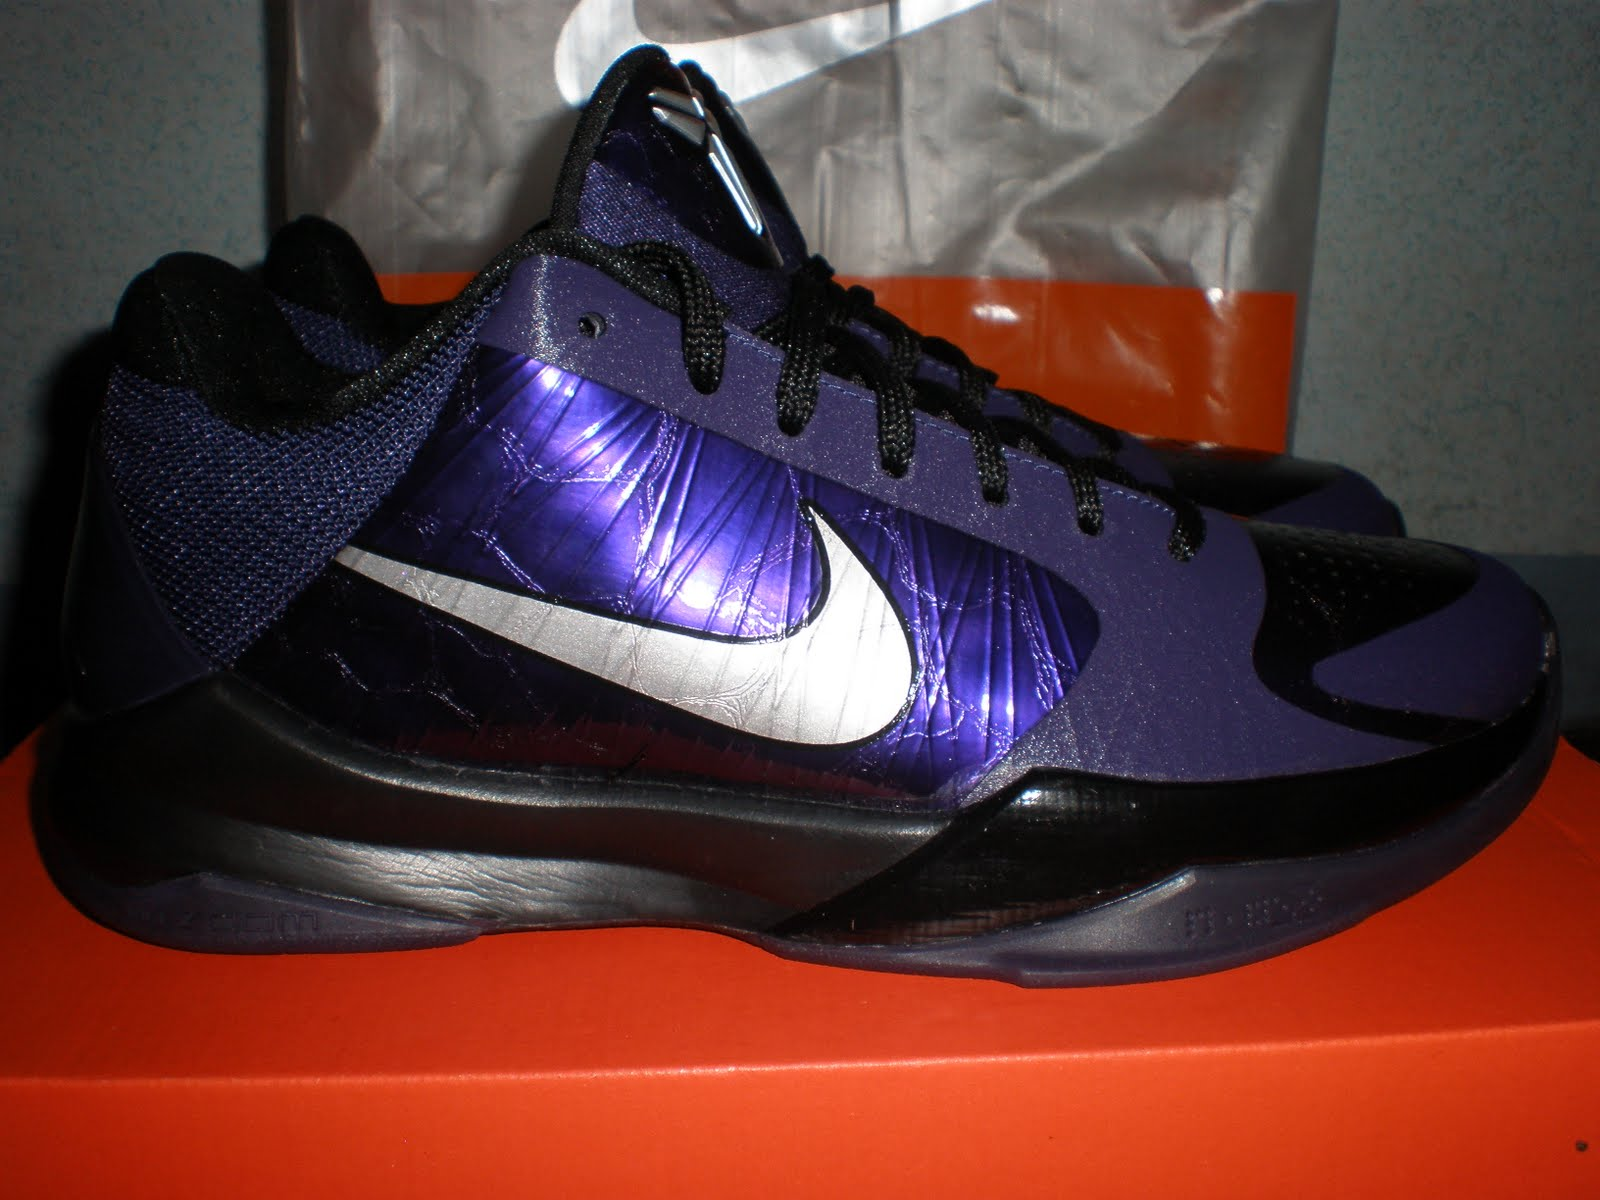 premium selection 6267d d5021 Aside from collecting toys, I also collect basketball shoes most  especially, Kobe signature shoes. Luckily, there was a sale in the Nike  Park in Gateway ...